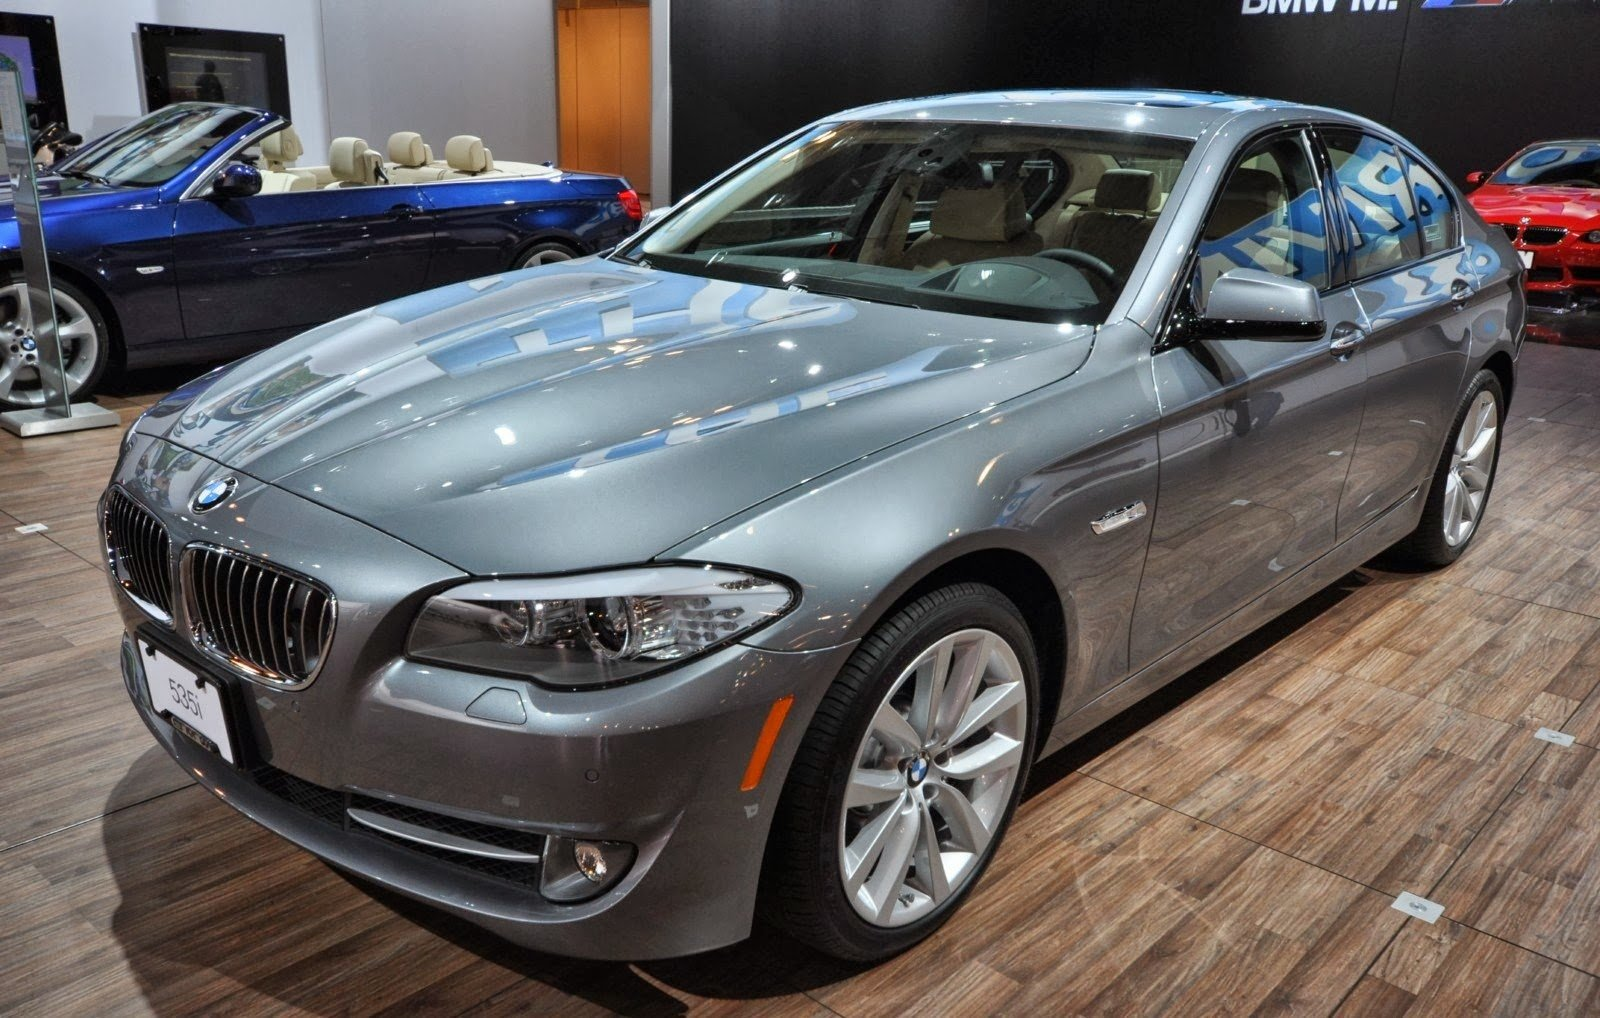 Latest Bmw 535I Car Prices Photos Prices Information Wallpapers Free Download